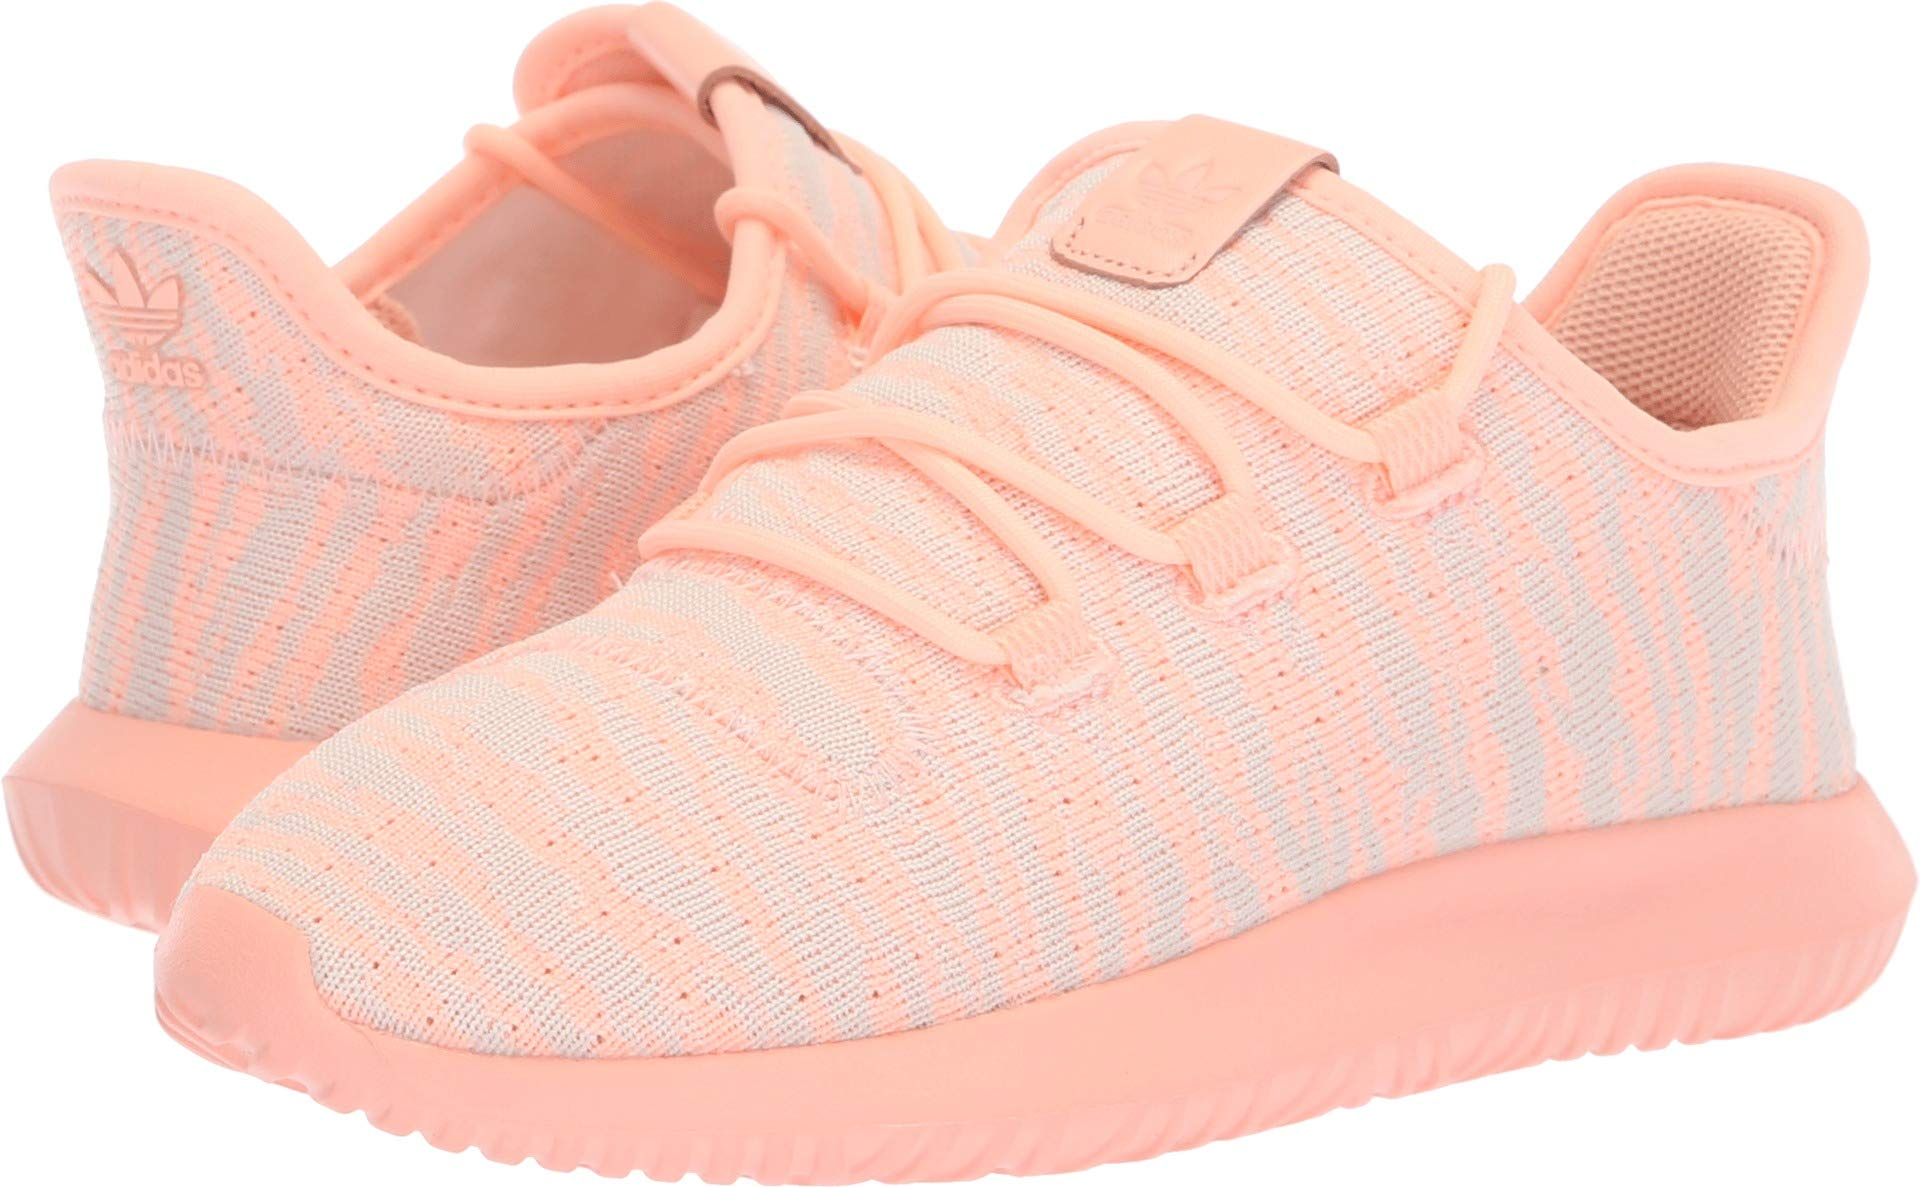 adidas Originals Kids Girl's Tubular Shadow C (Little Kid) Clear Orange/White/Light Pink 12 M US Little Kid